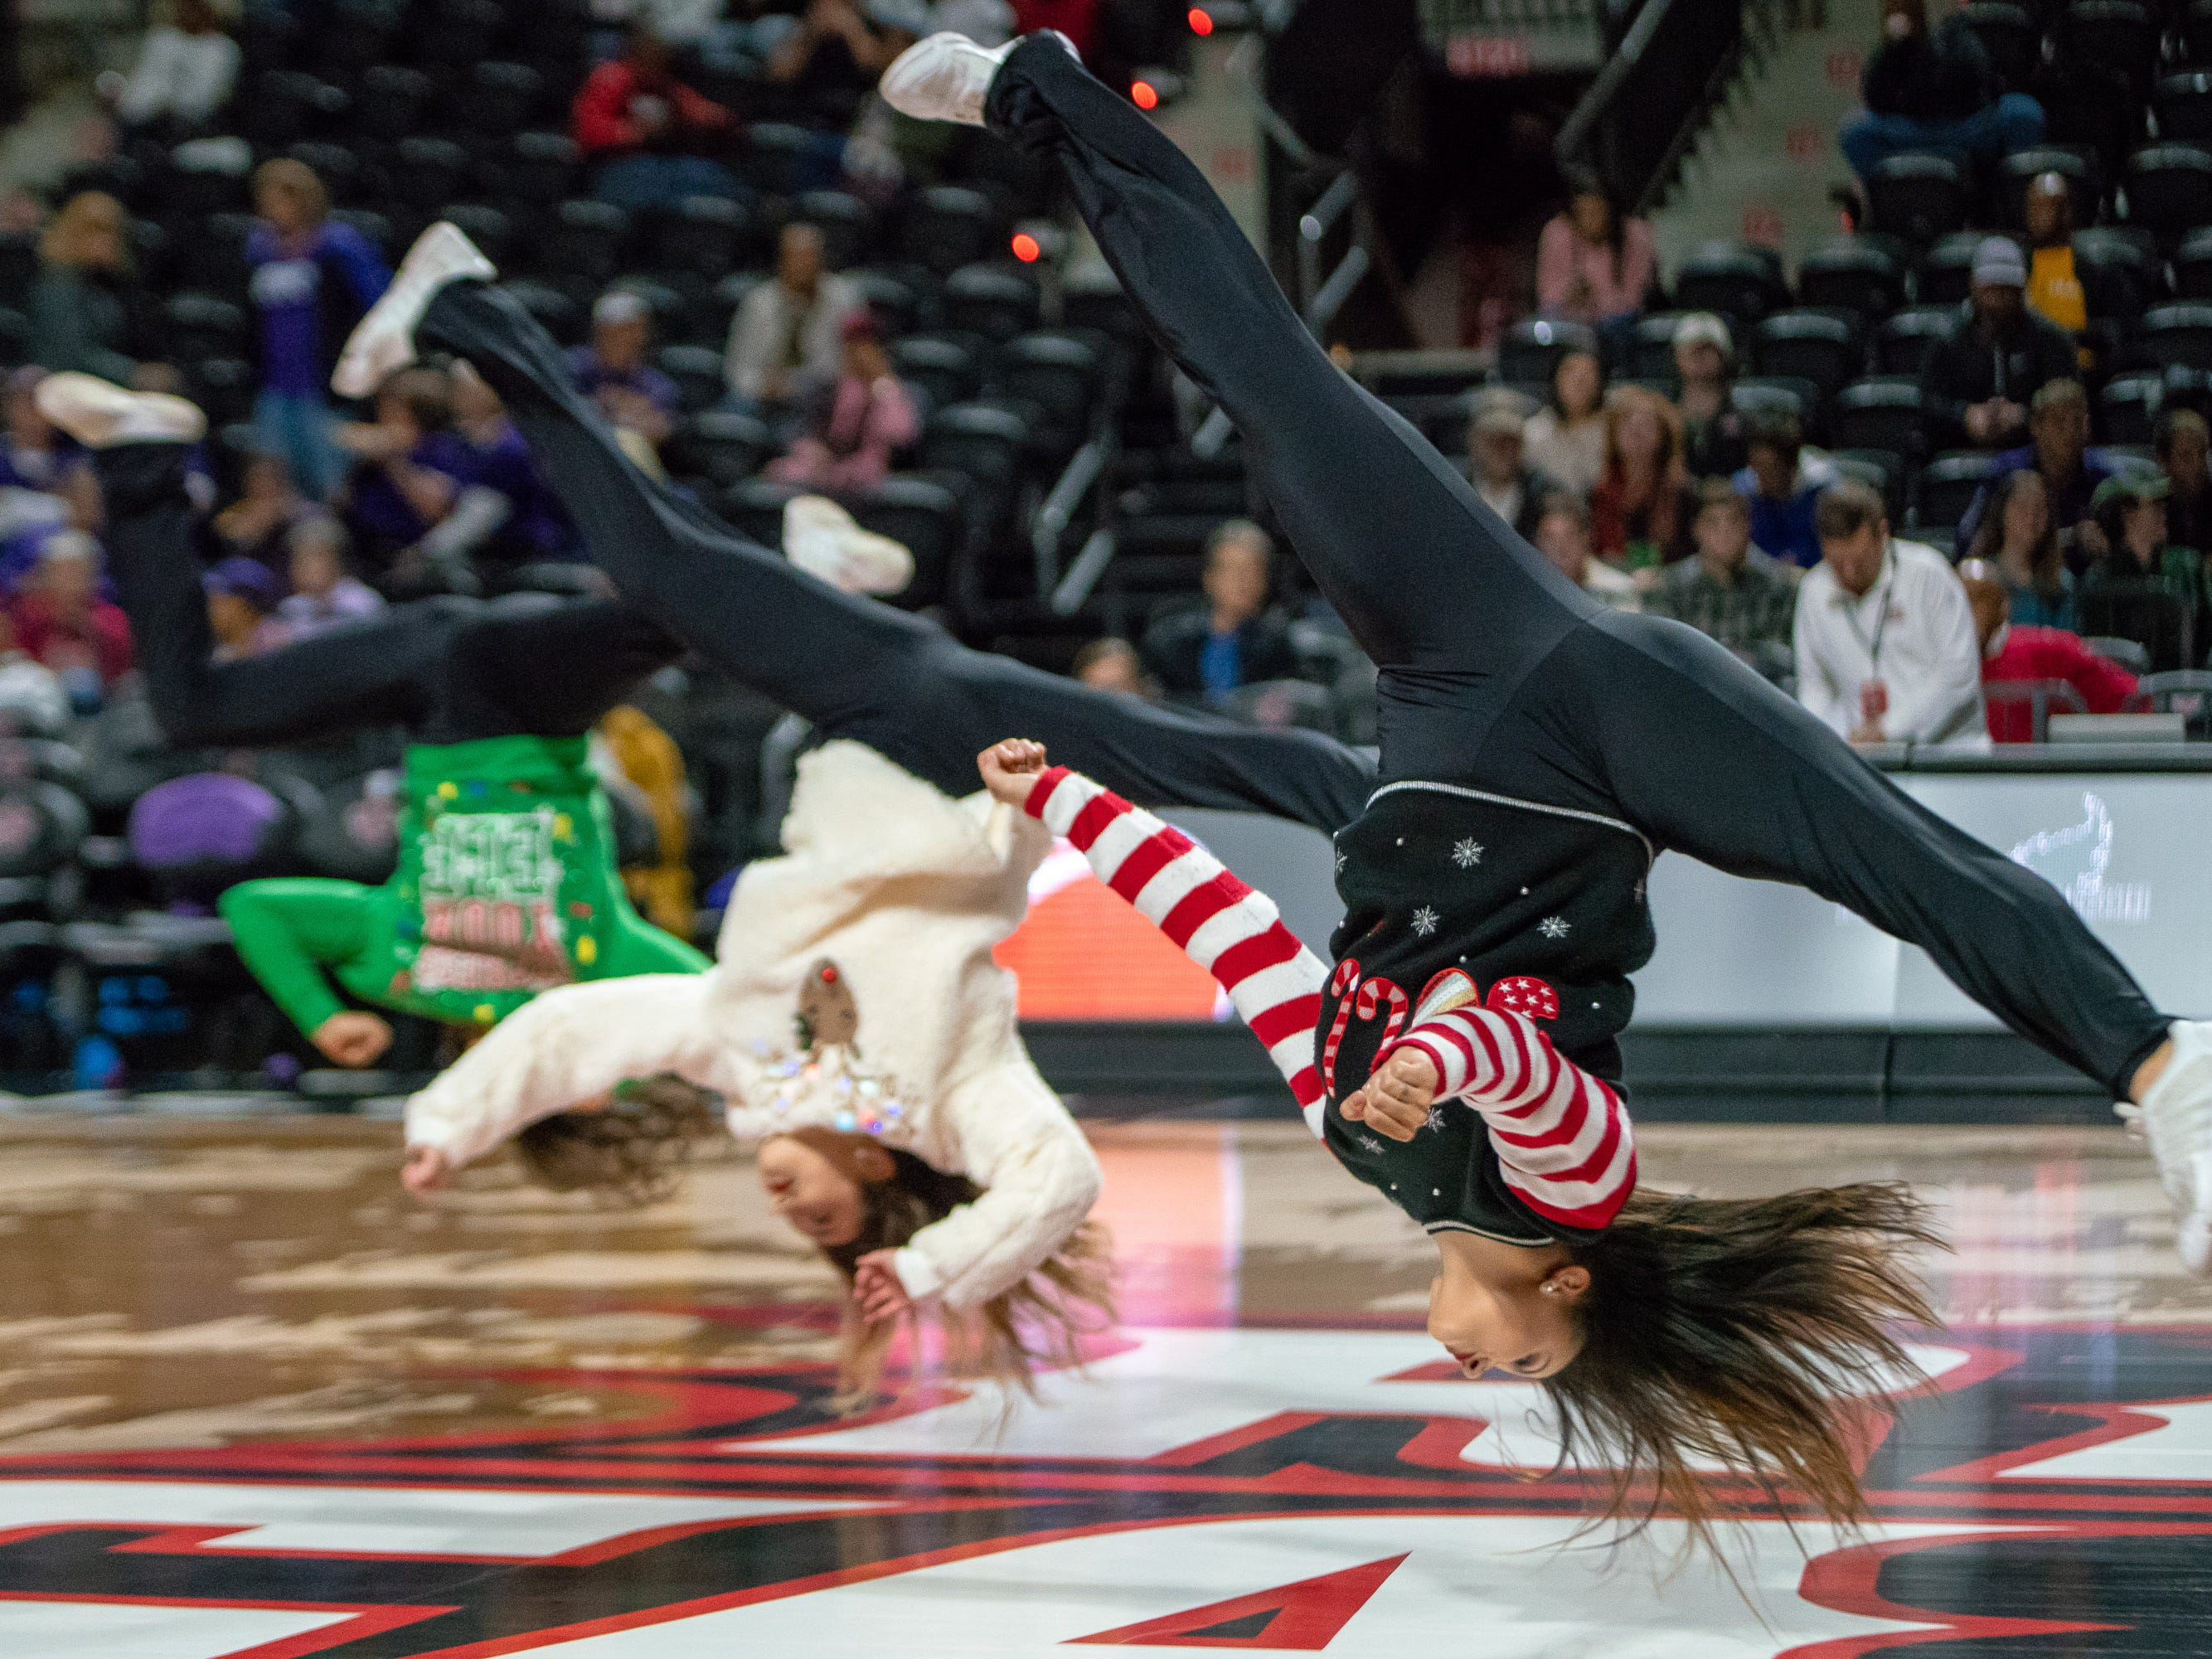 The Ragin' Jazz perform their routine at half-time as the Ragin' Cajuns play against LSU Tigers at the Cajundome on Dec. 20, 2018.